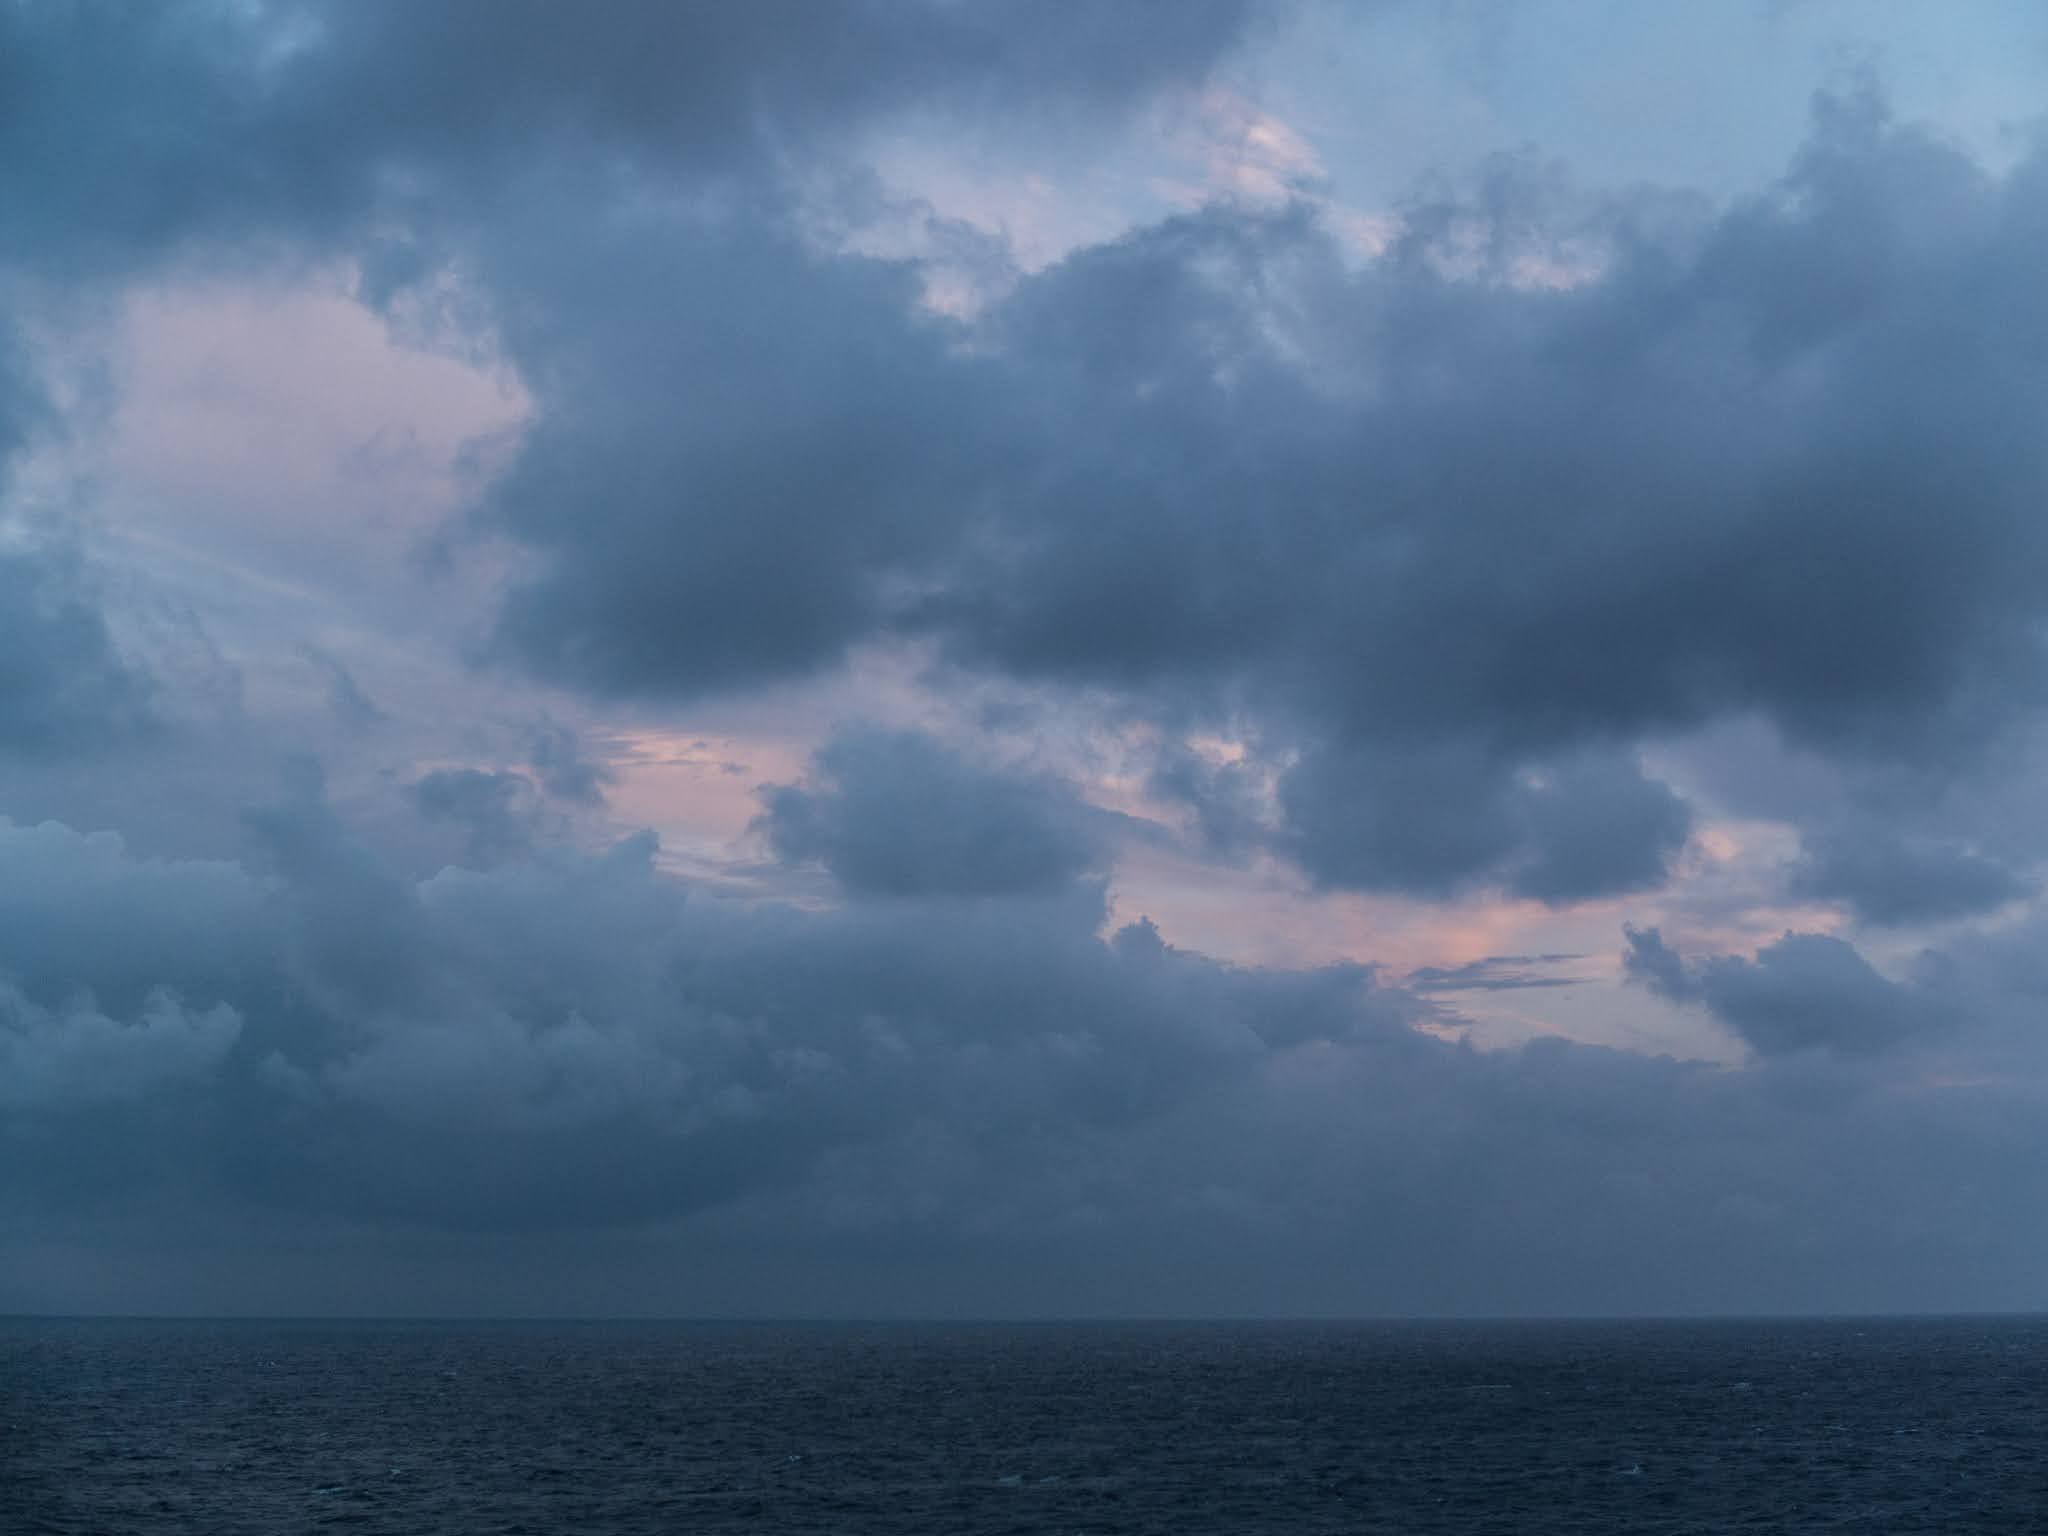 Clouds over the Mediterranean sea at twilight.